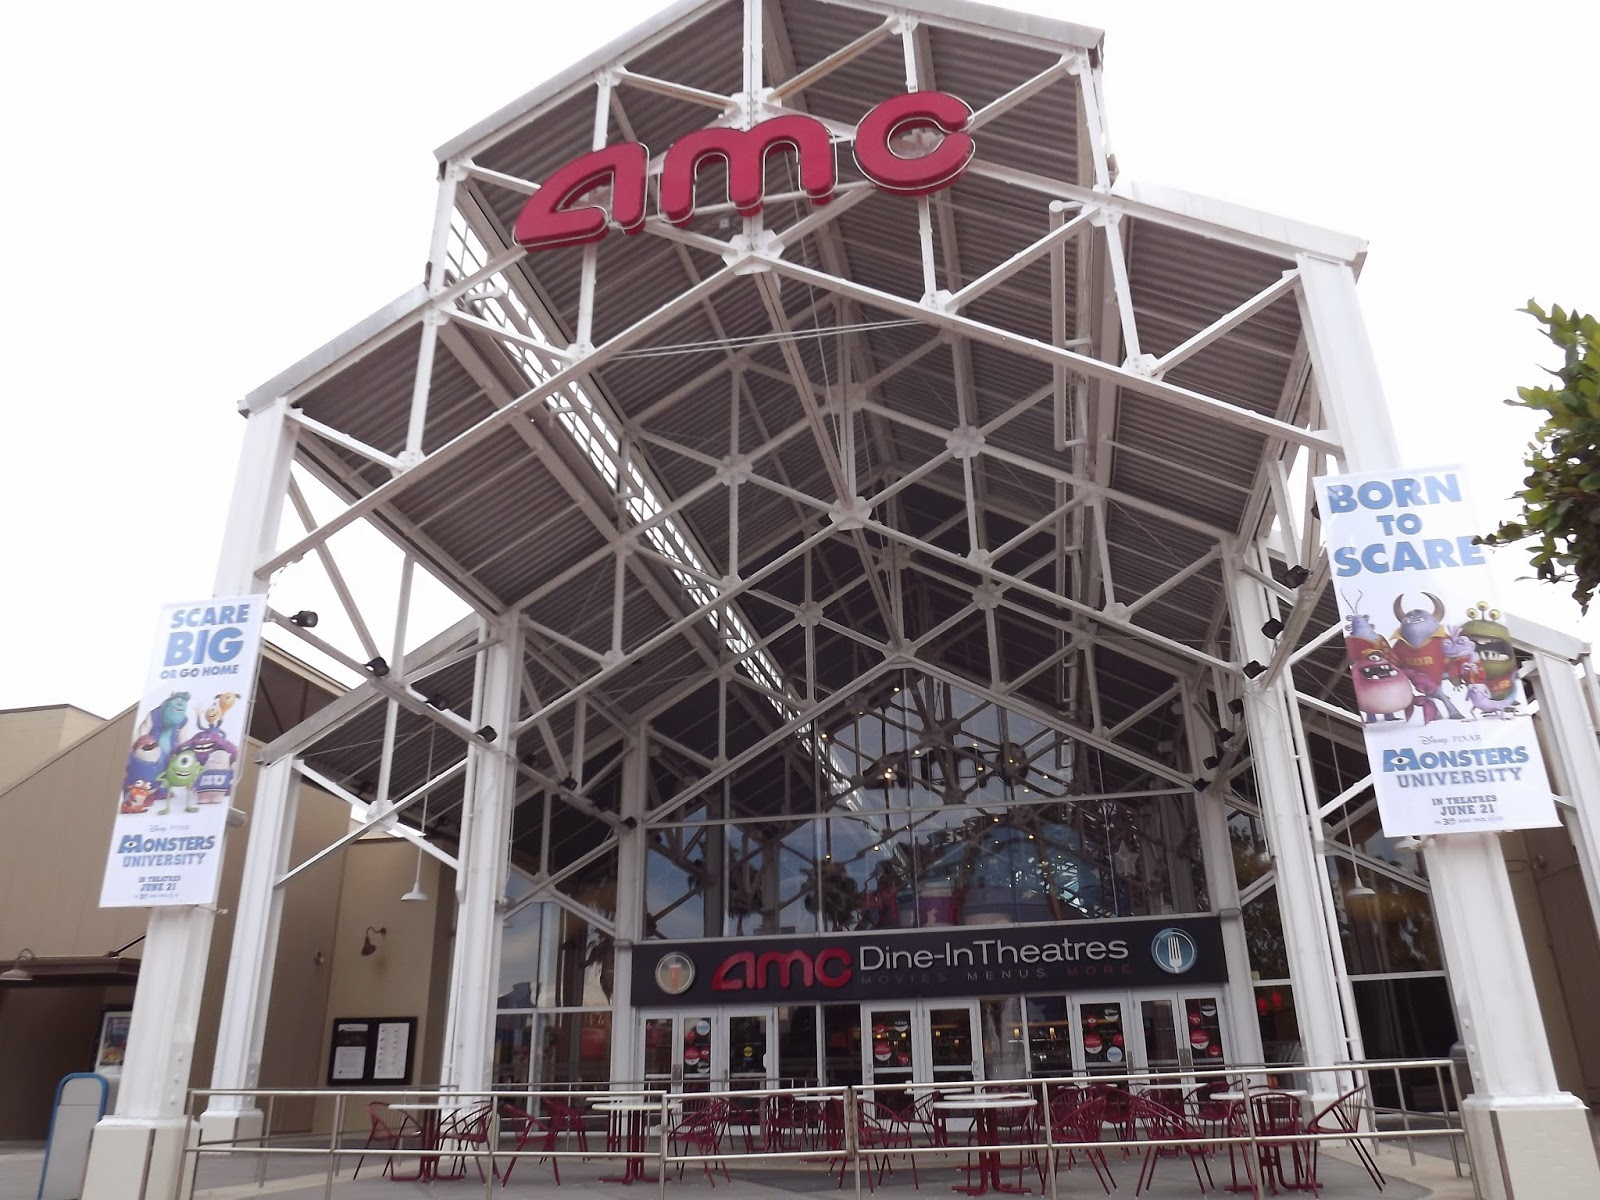 a personal narrative about the experience of going to an amc movie theatre Public accommodations with movie theater auditoriums showing digital movies on december 2, 2016 must comply with the rule's requirement to provide closed movie captioning and audio description in such auditoriums by june 2, 2018.